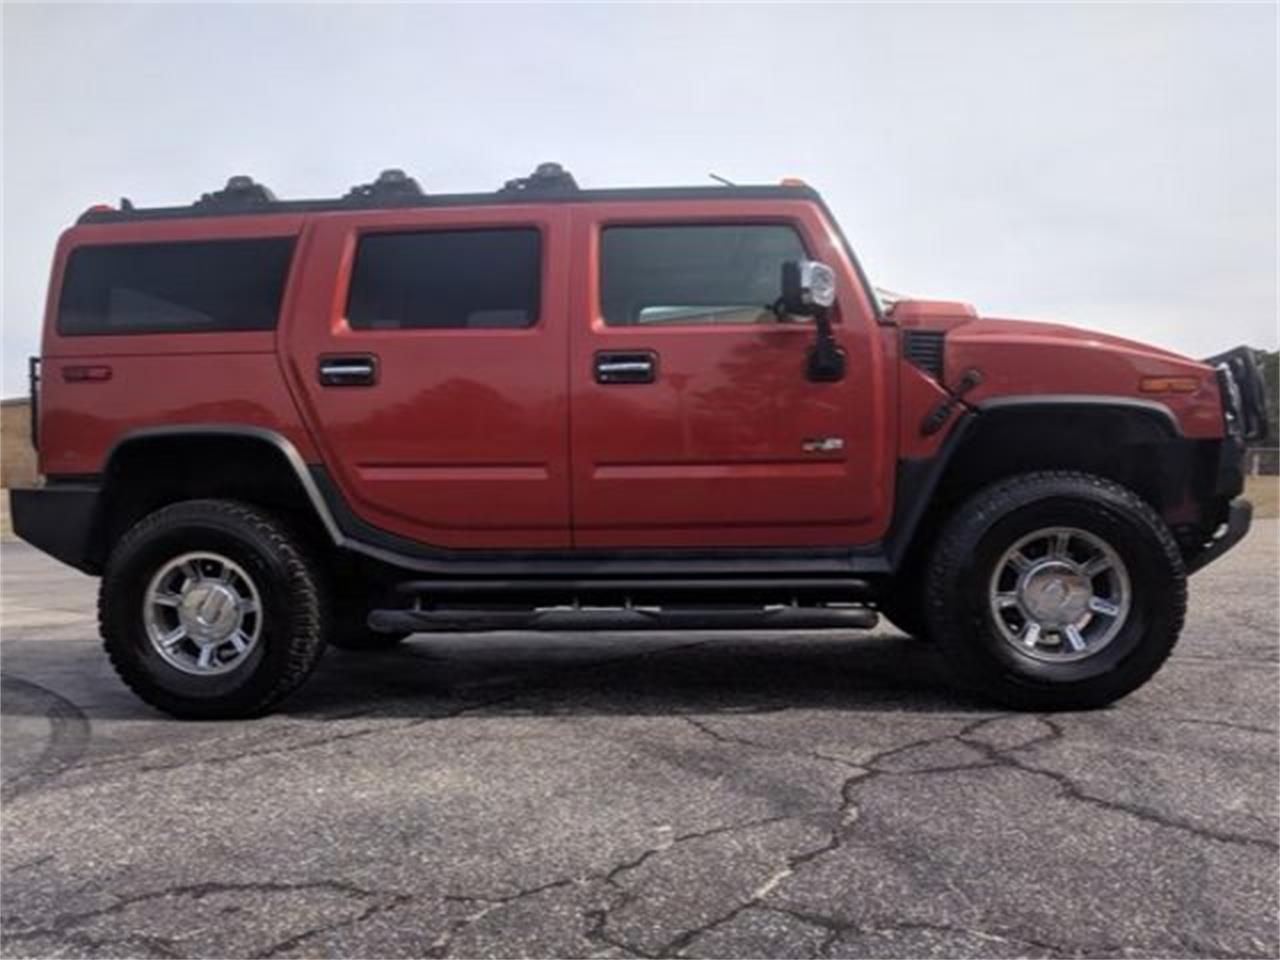 2003 Hummer H2 for sale in Hope Mills, NC – photo 10